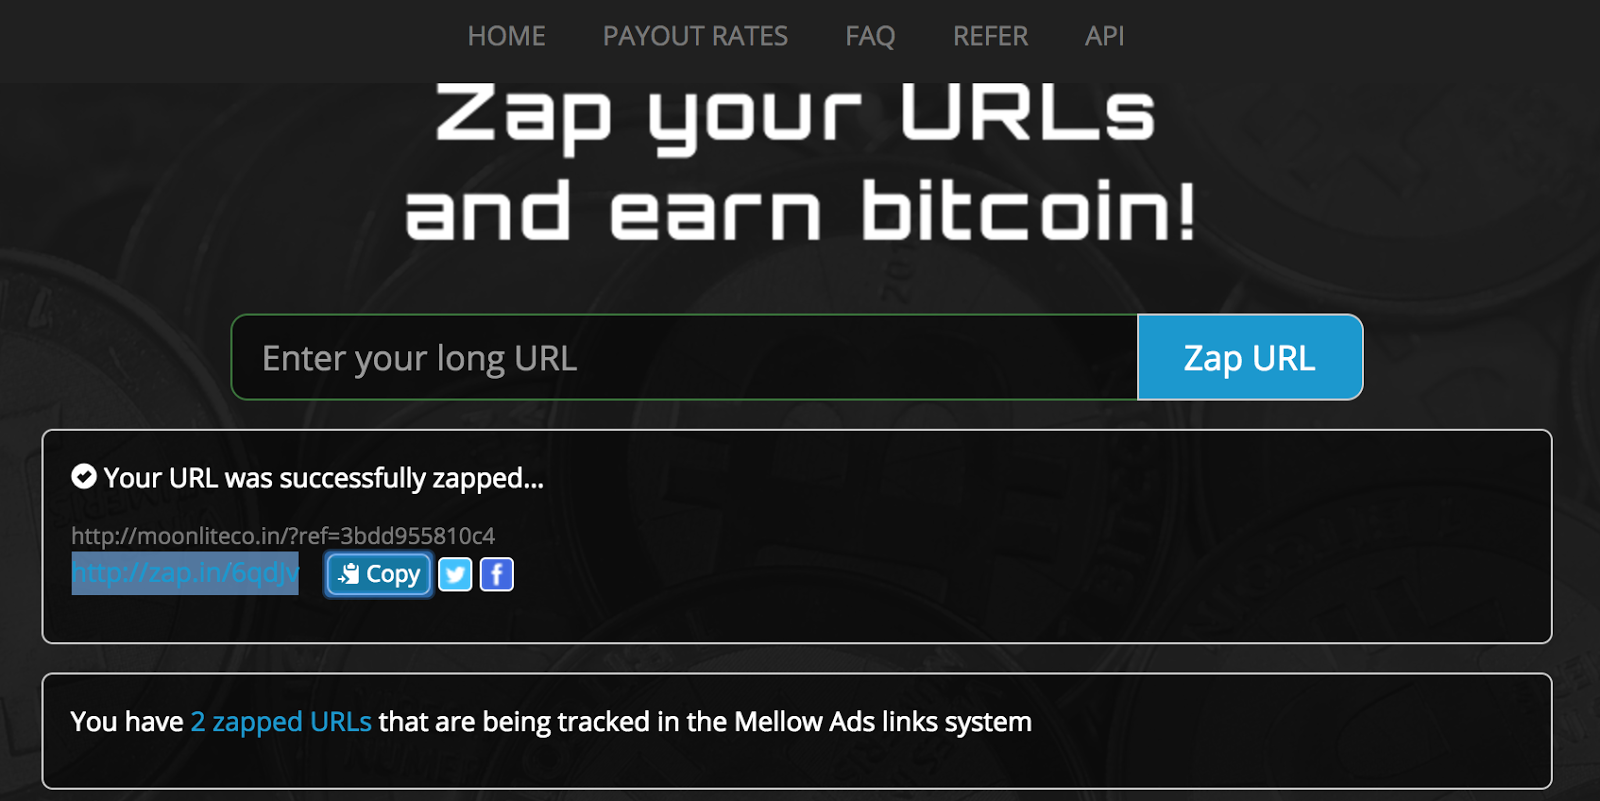 Earn Bitcoin with Zap.in (url link shortener) | Free CryptoCoins in ...